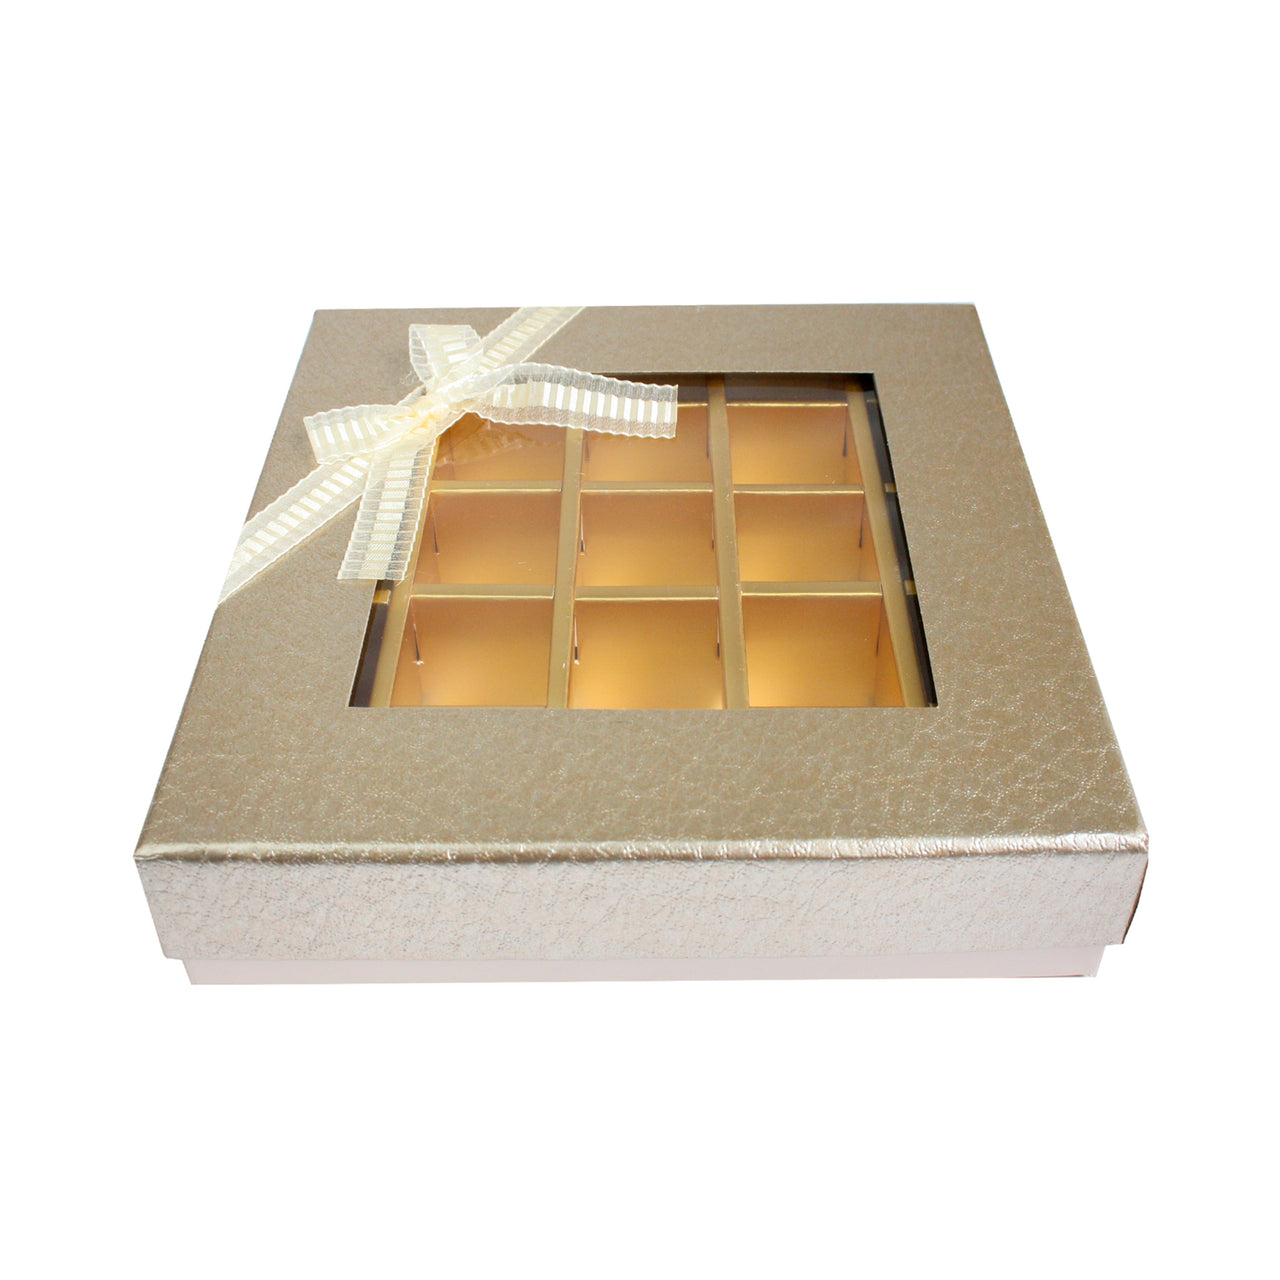 25 Compartment Metallic Gift Box - Gold